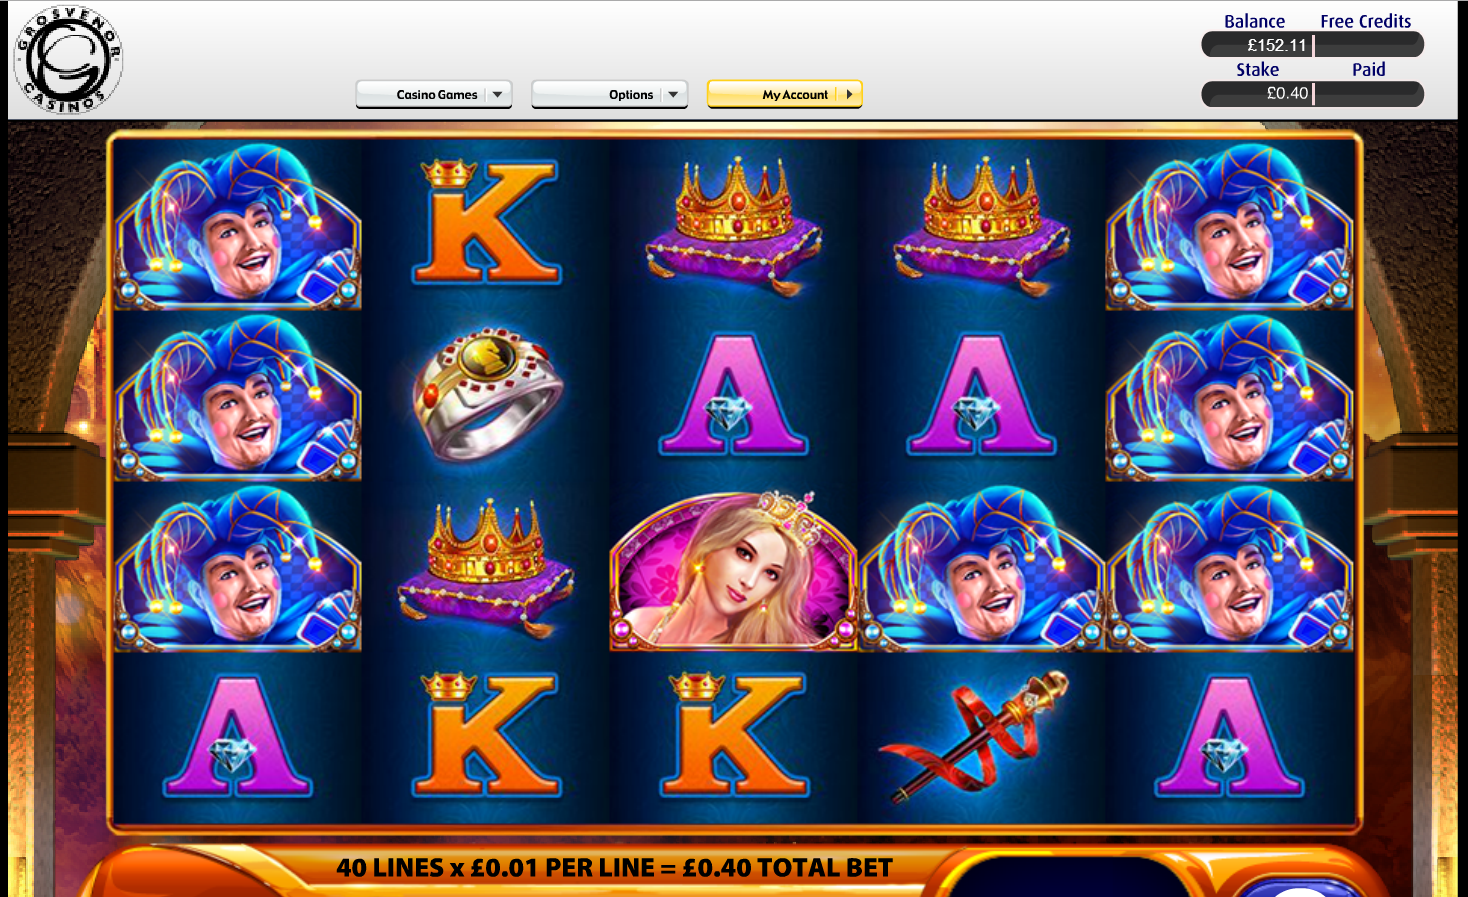 Grosvenor Casinos Casino Screenshot #0